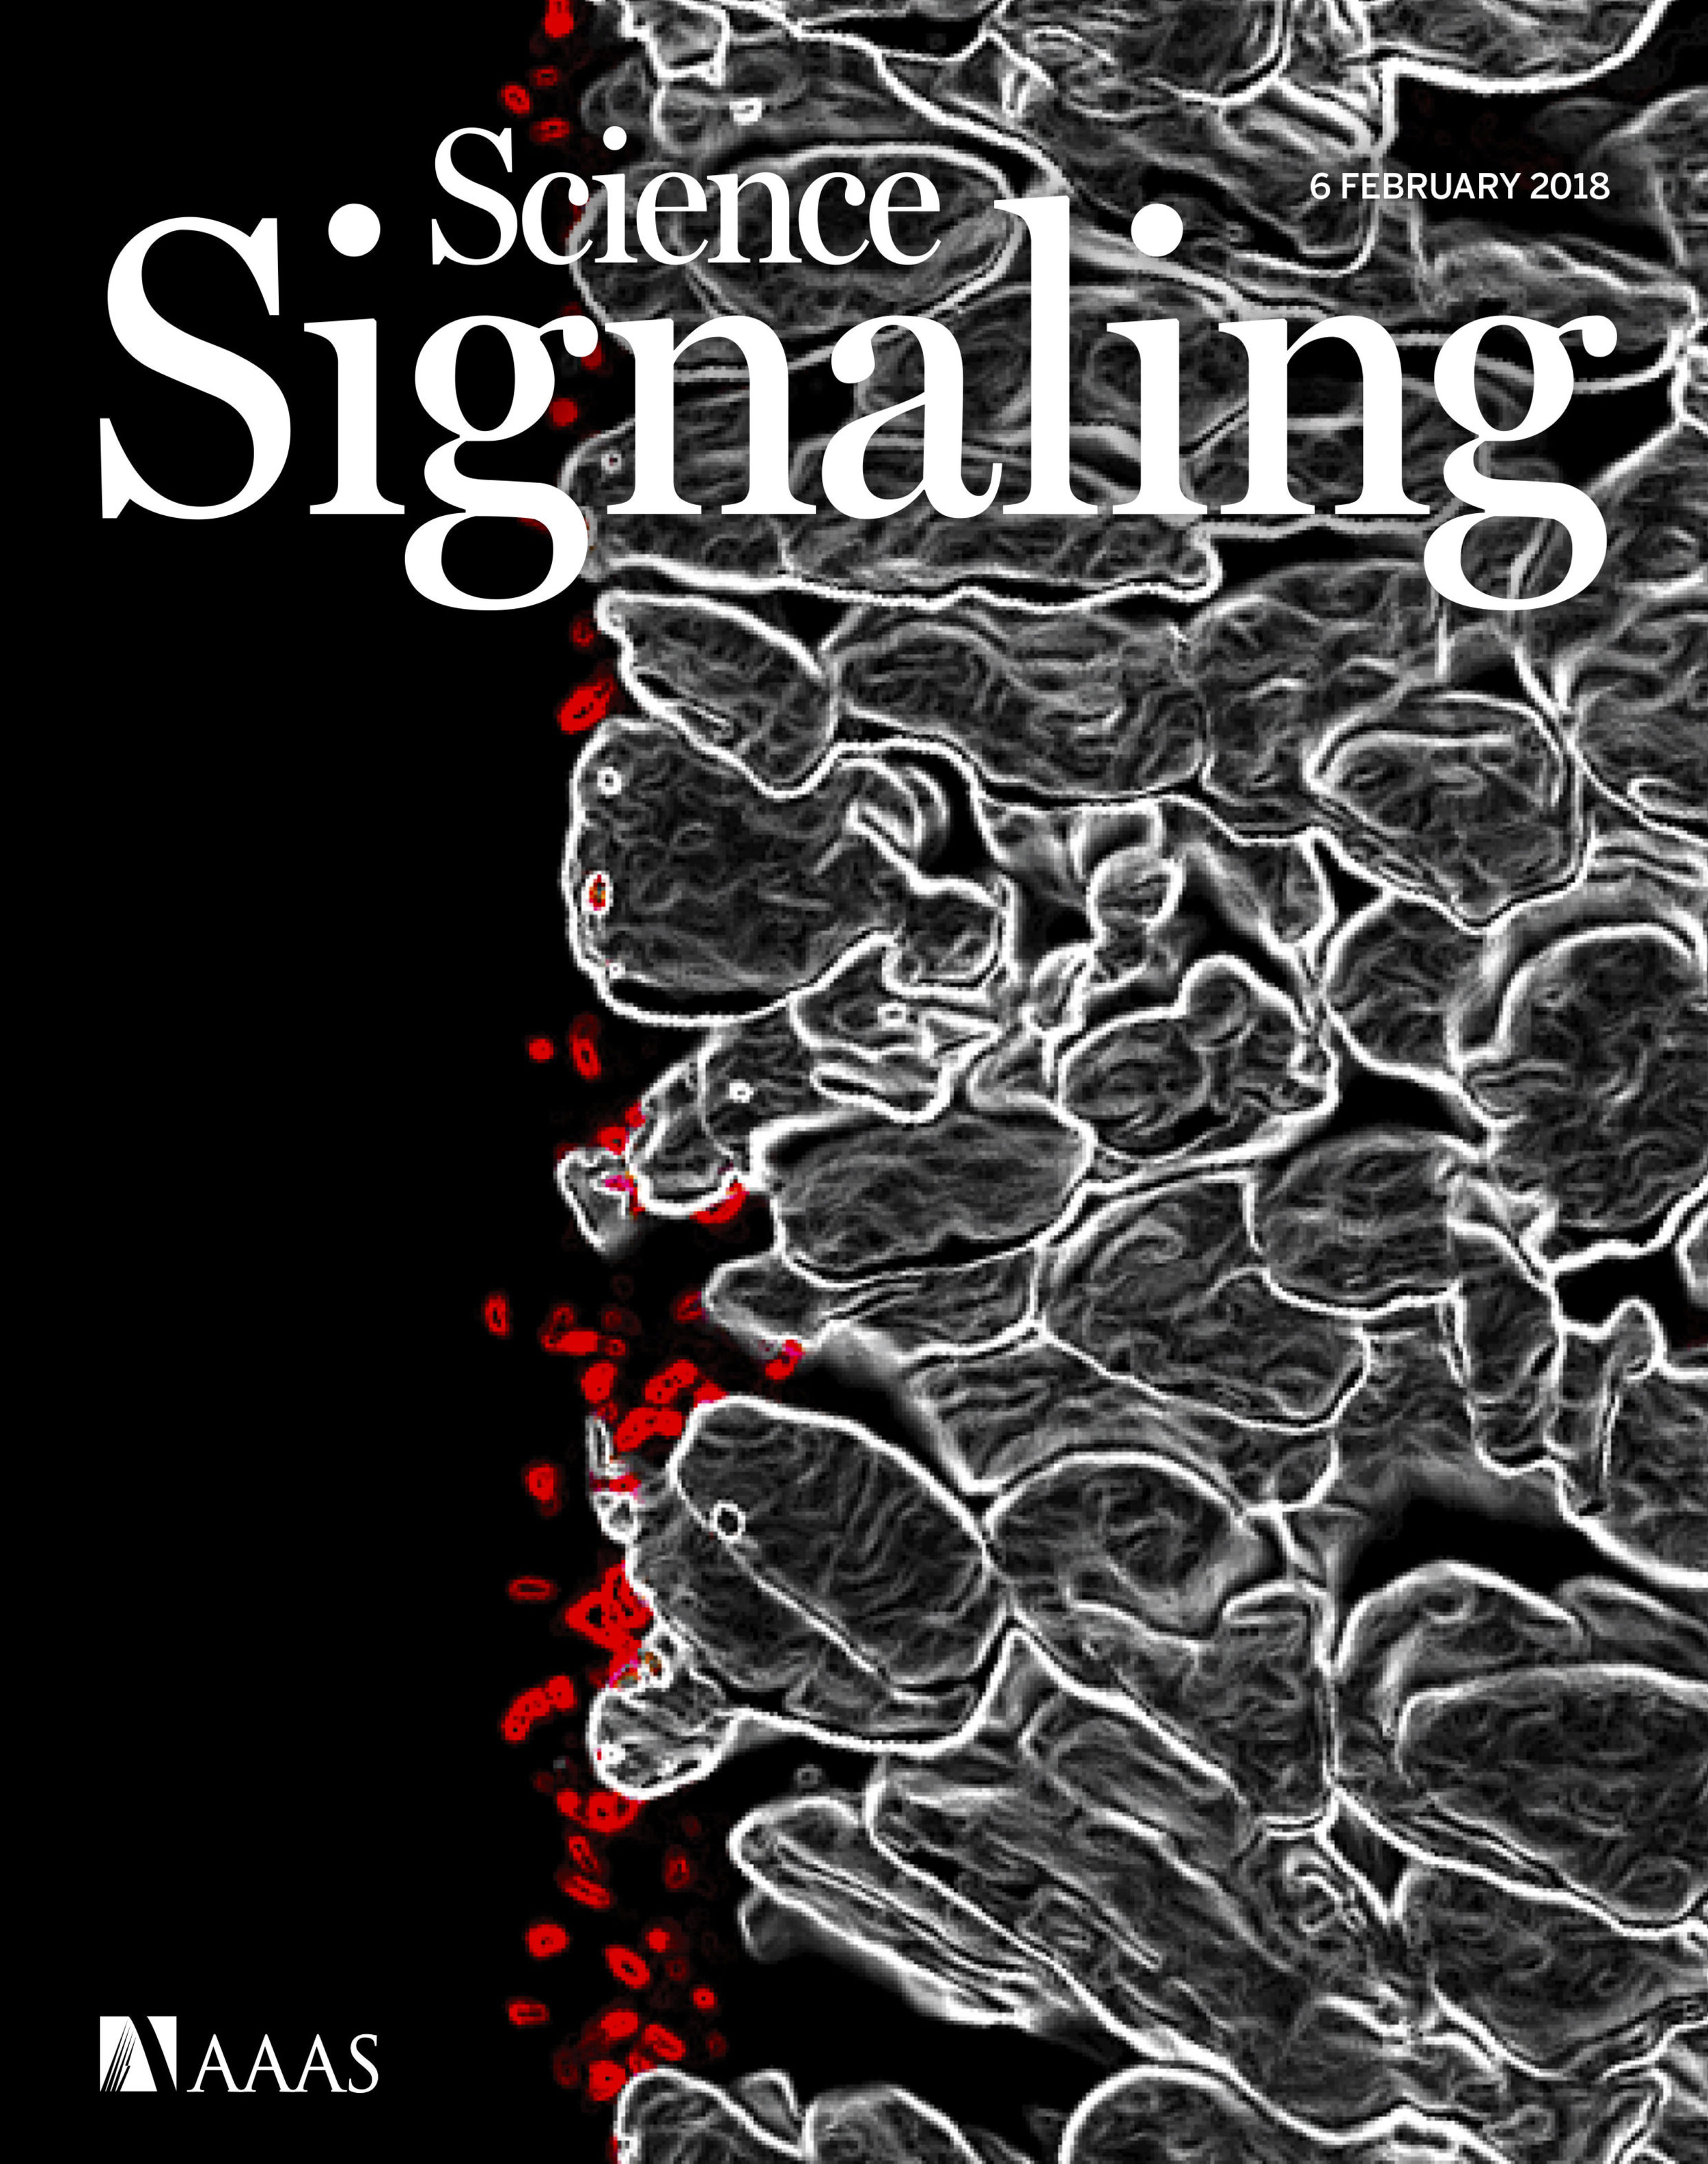 Science_signaling_cover.jpg